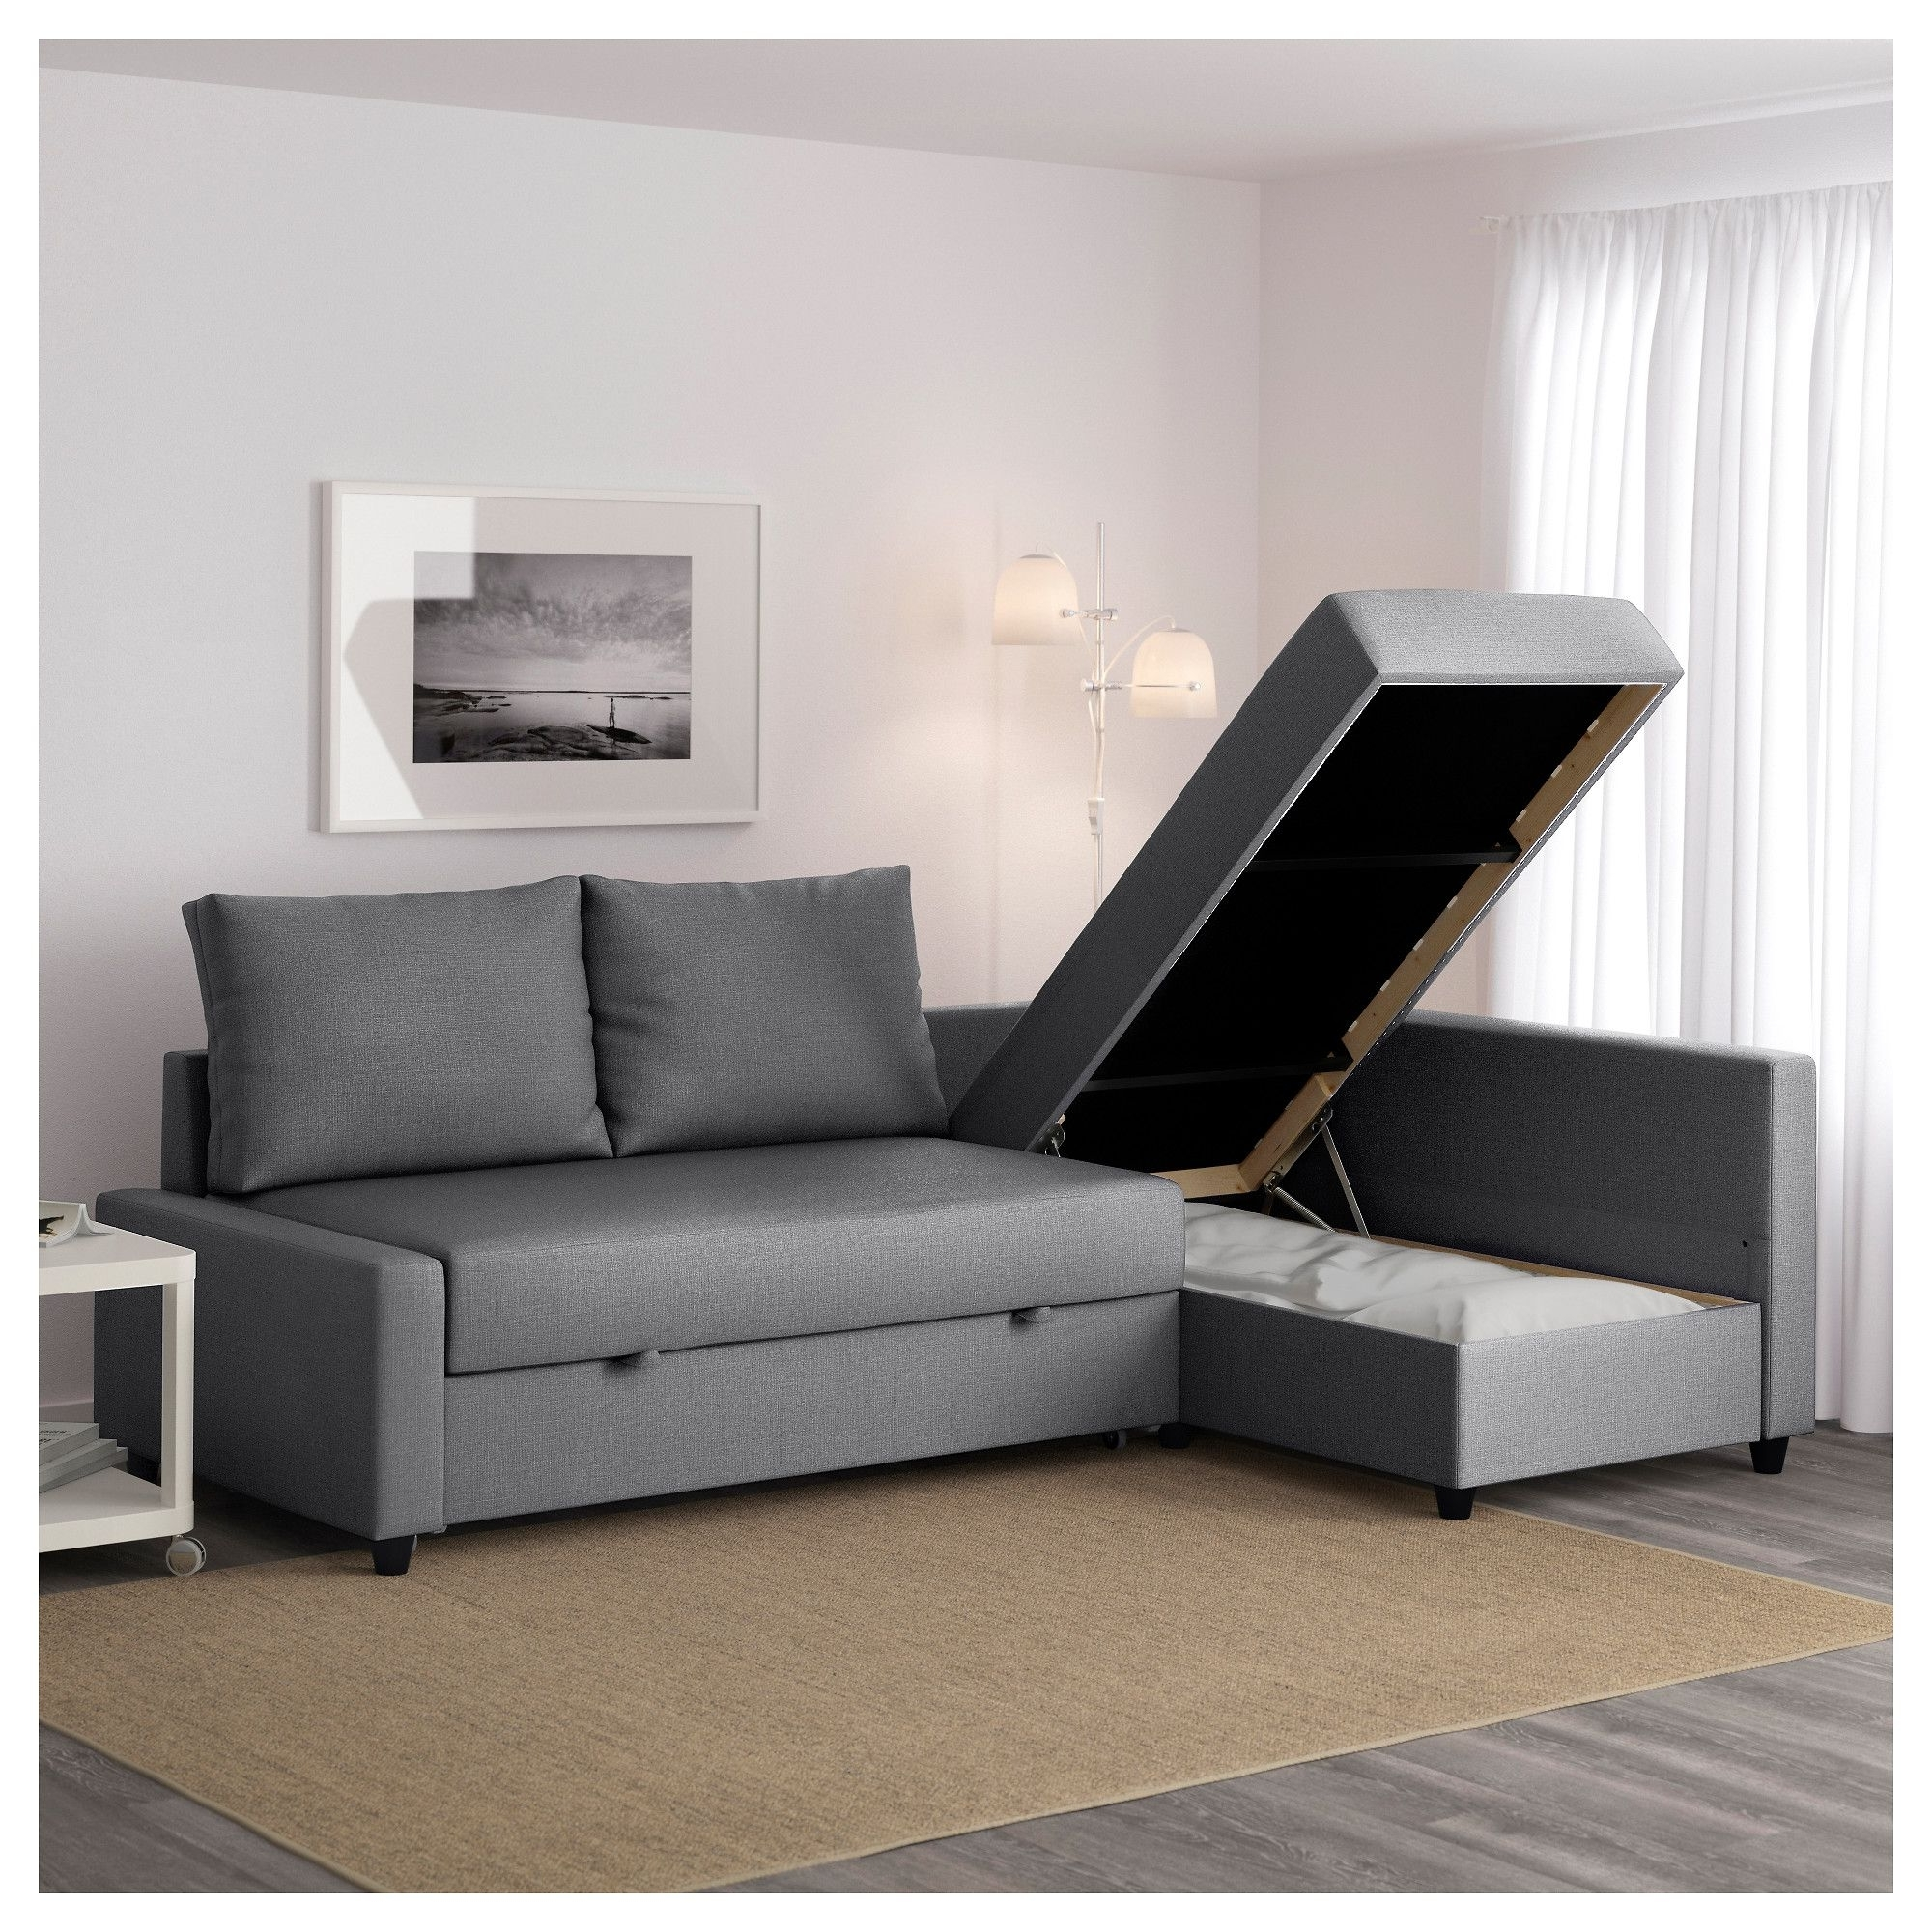 Ikea Corner Sofas With Storage In Best And Newest Friheten Corner Sofa Bed With Storage Skiftebo Dark Grey (Gallery 3 of 20)